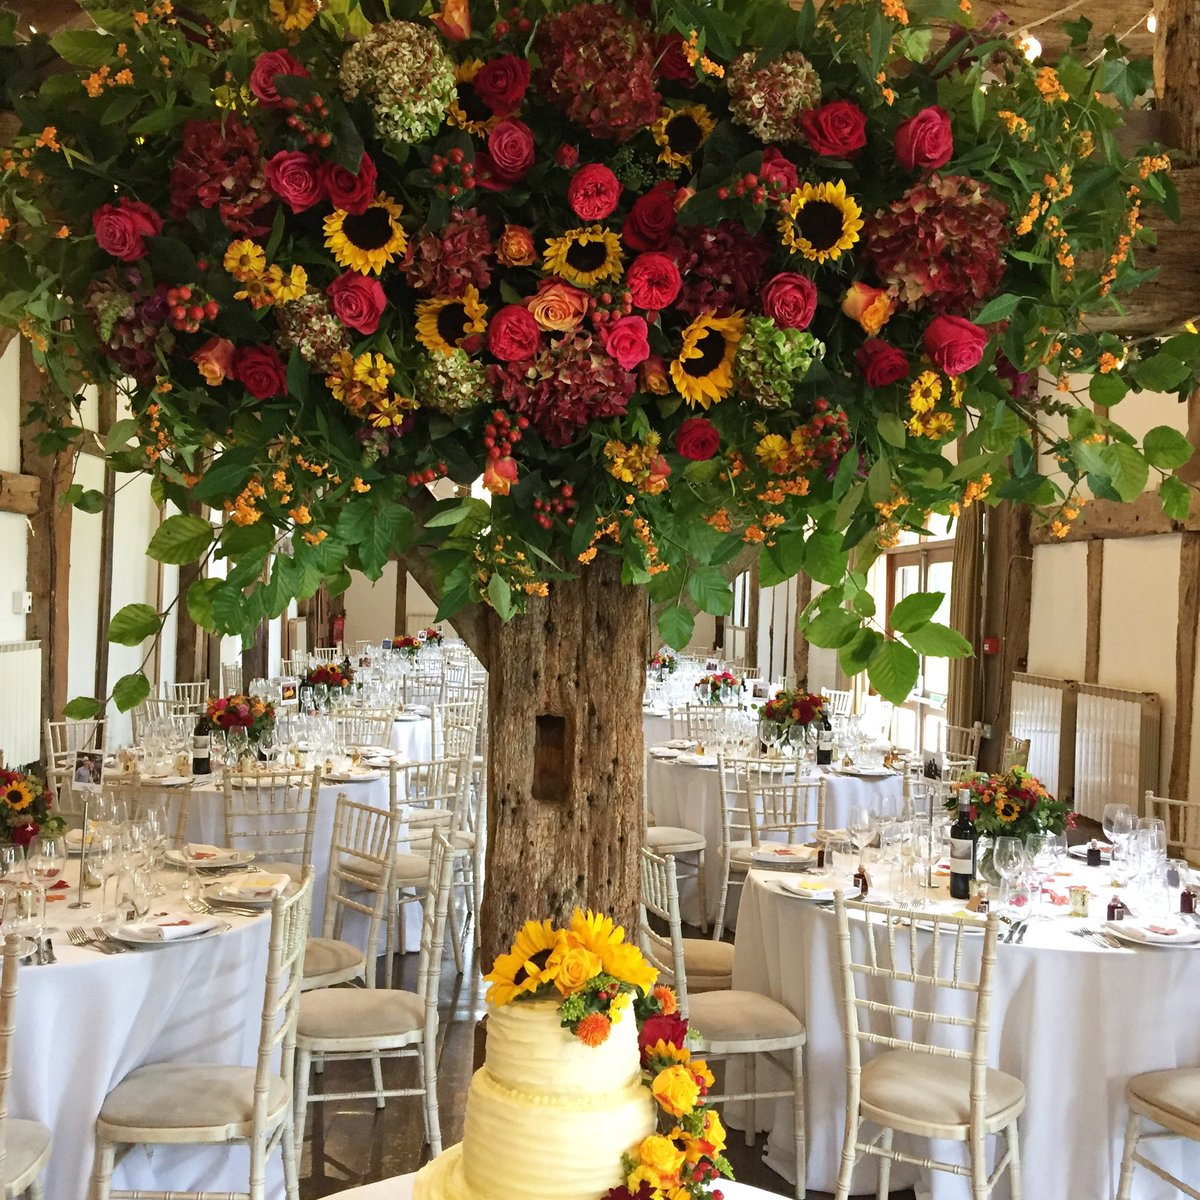 Abundant #Autumn #flower colours filling the barn for yesterday's #wedding @LoseleyPark @Loseleyevents